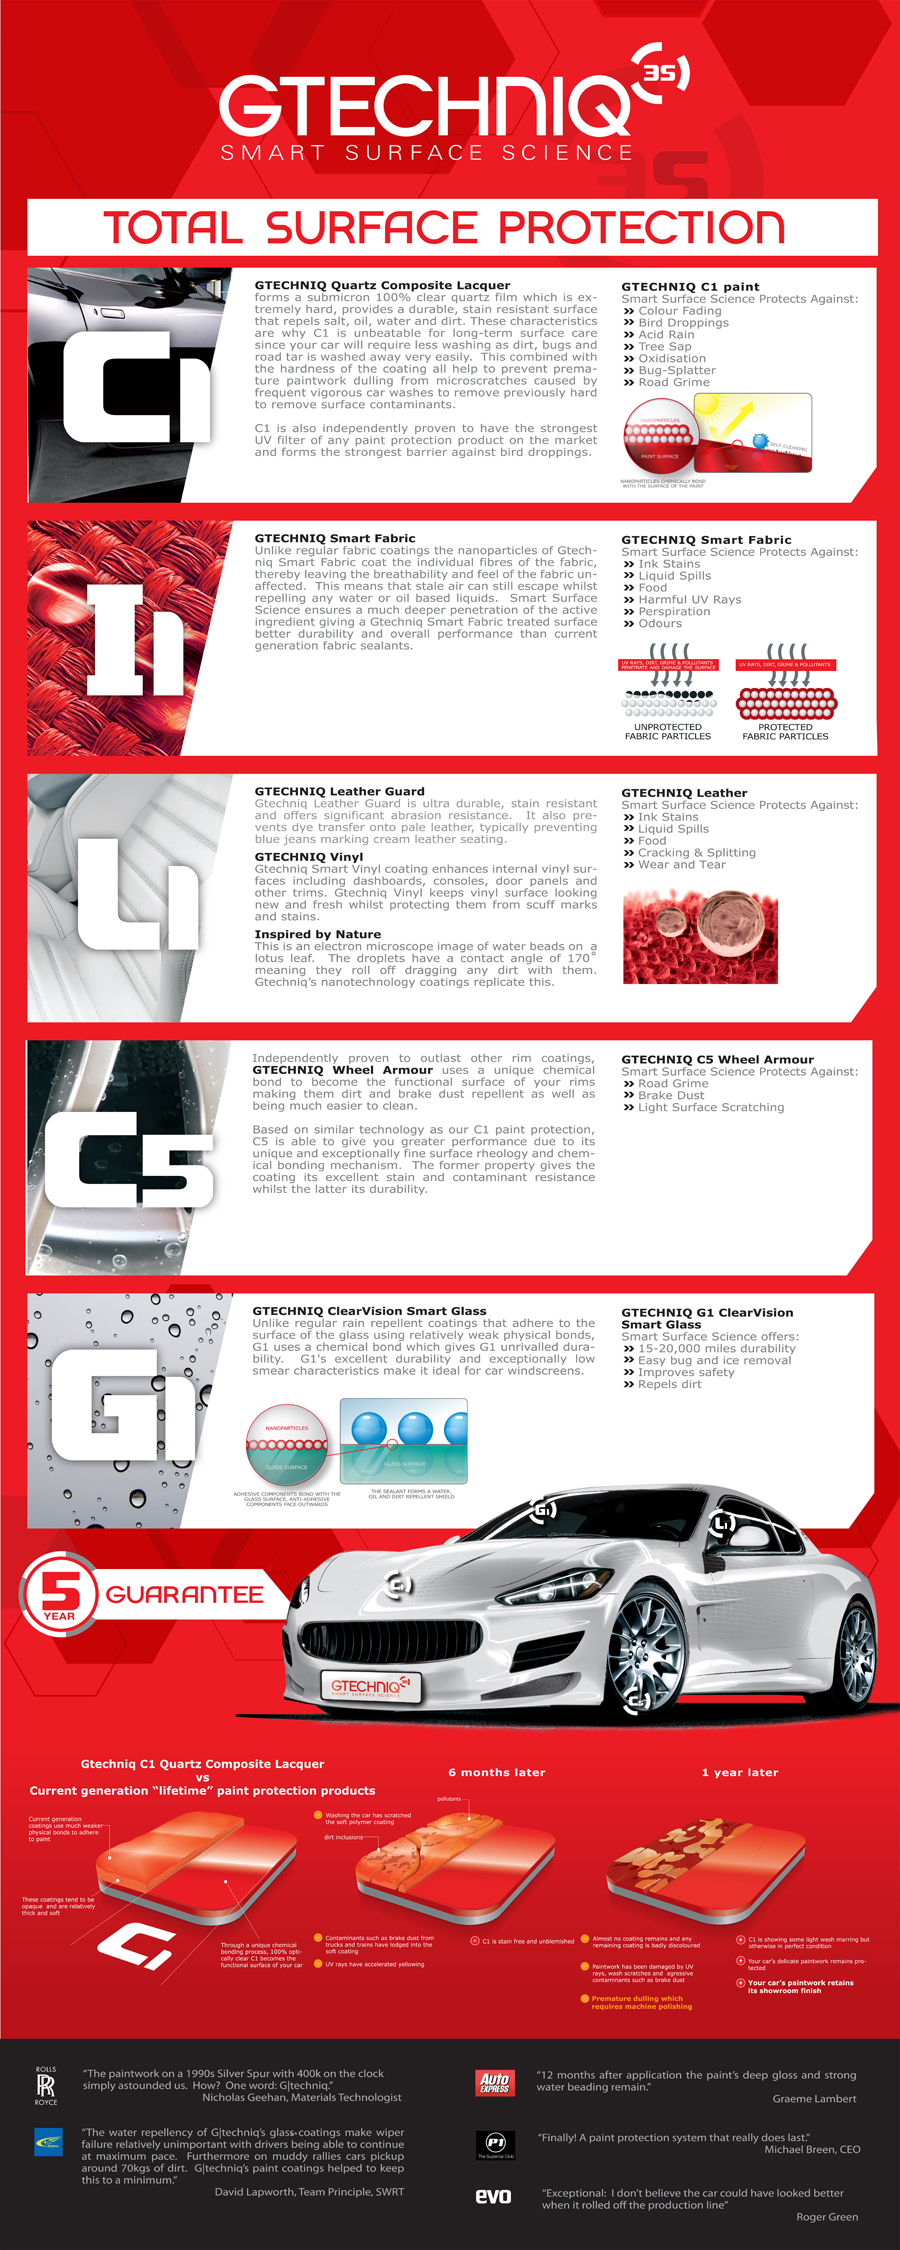 gtechniqTotal-Protection-by-pure-detail